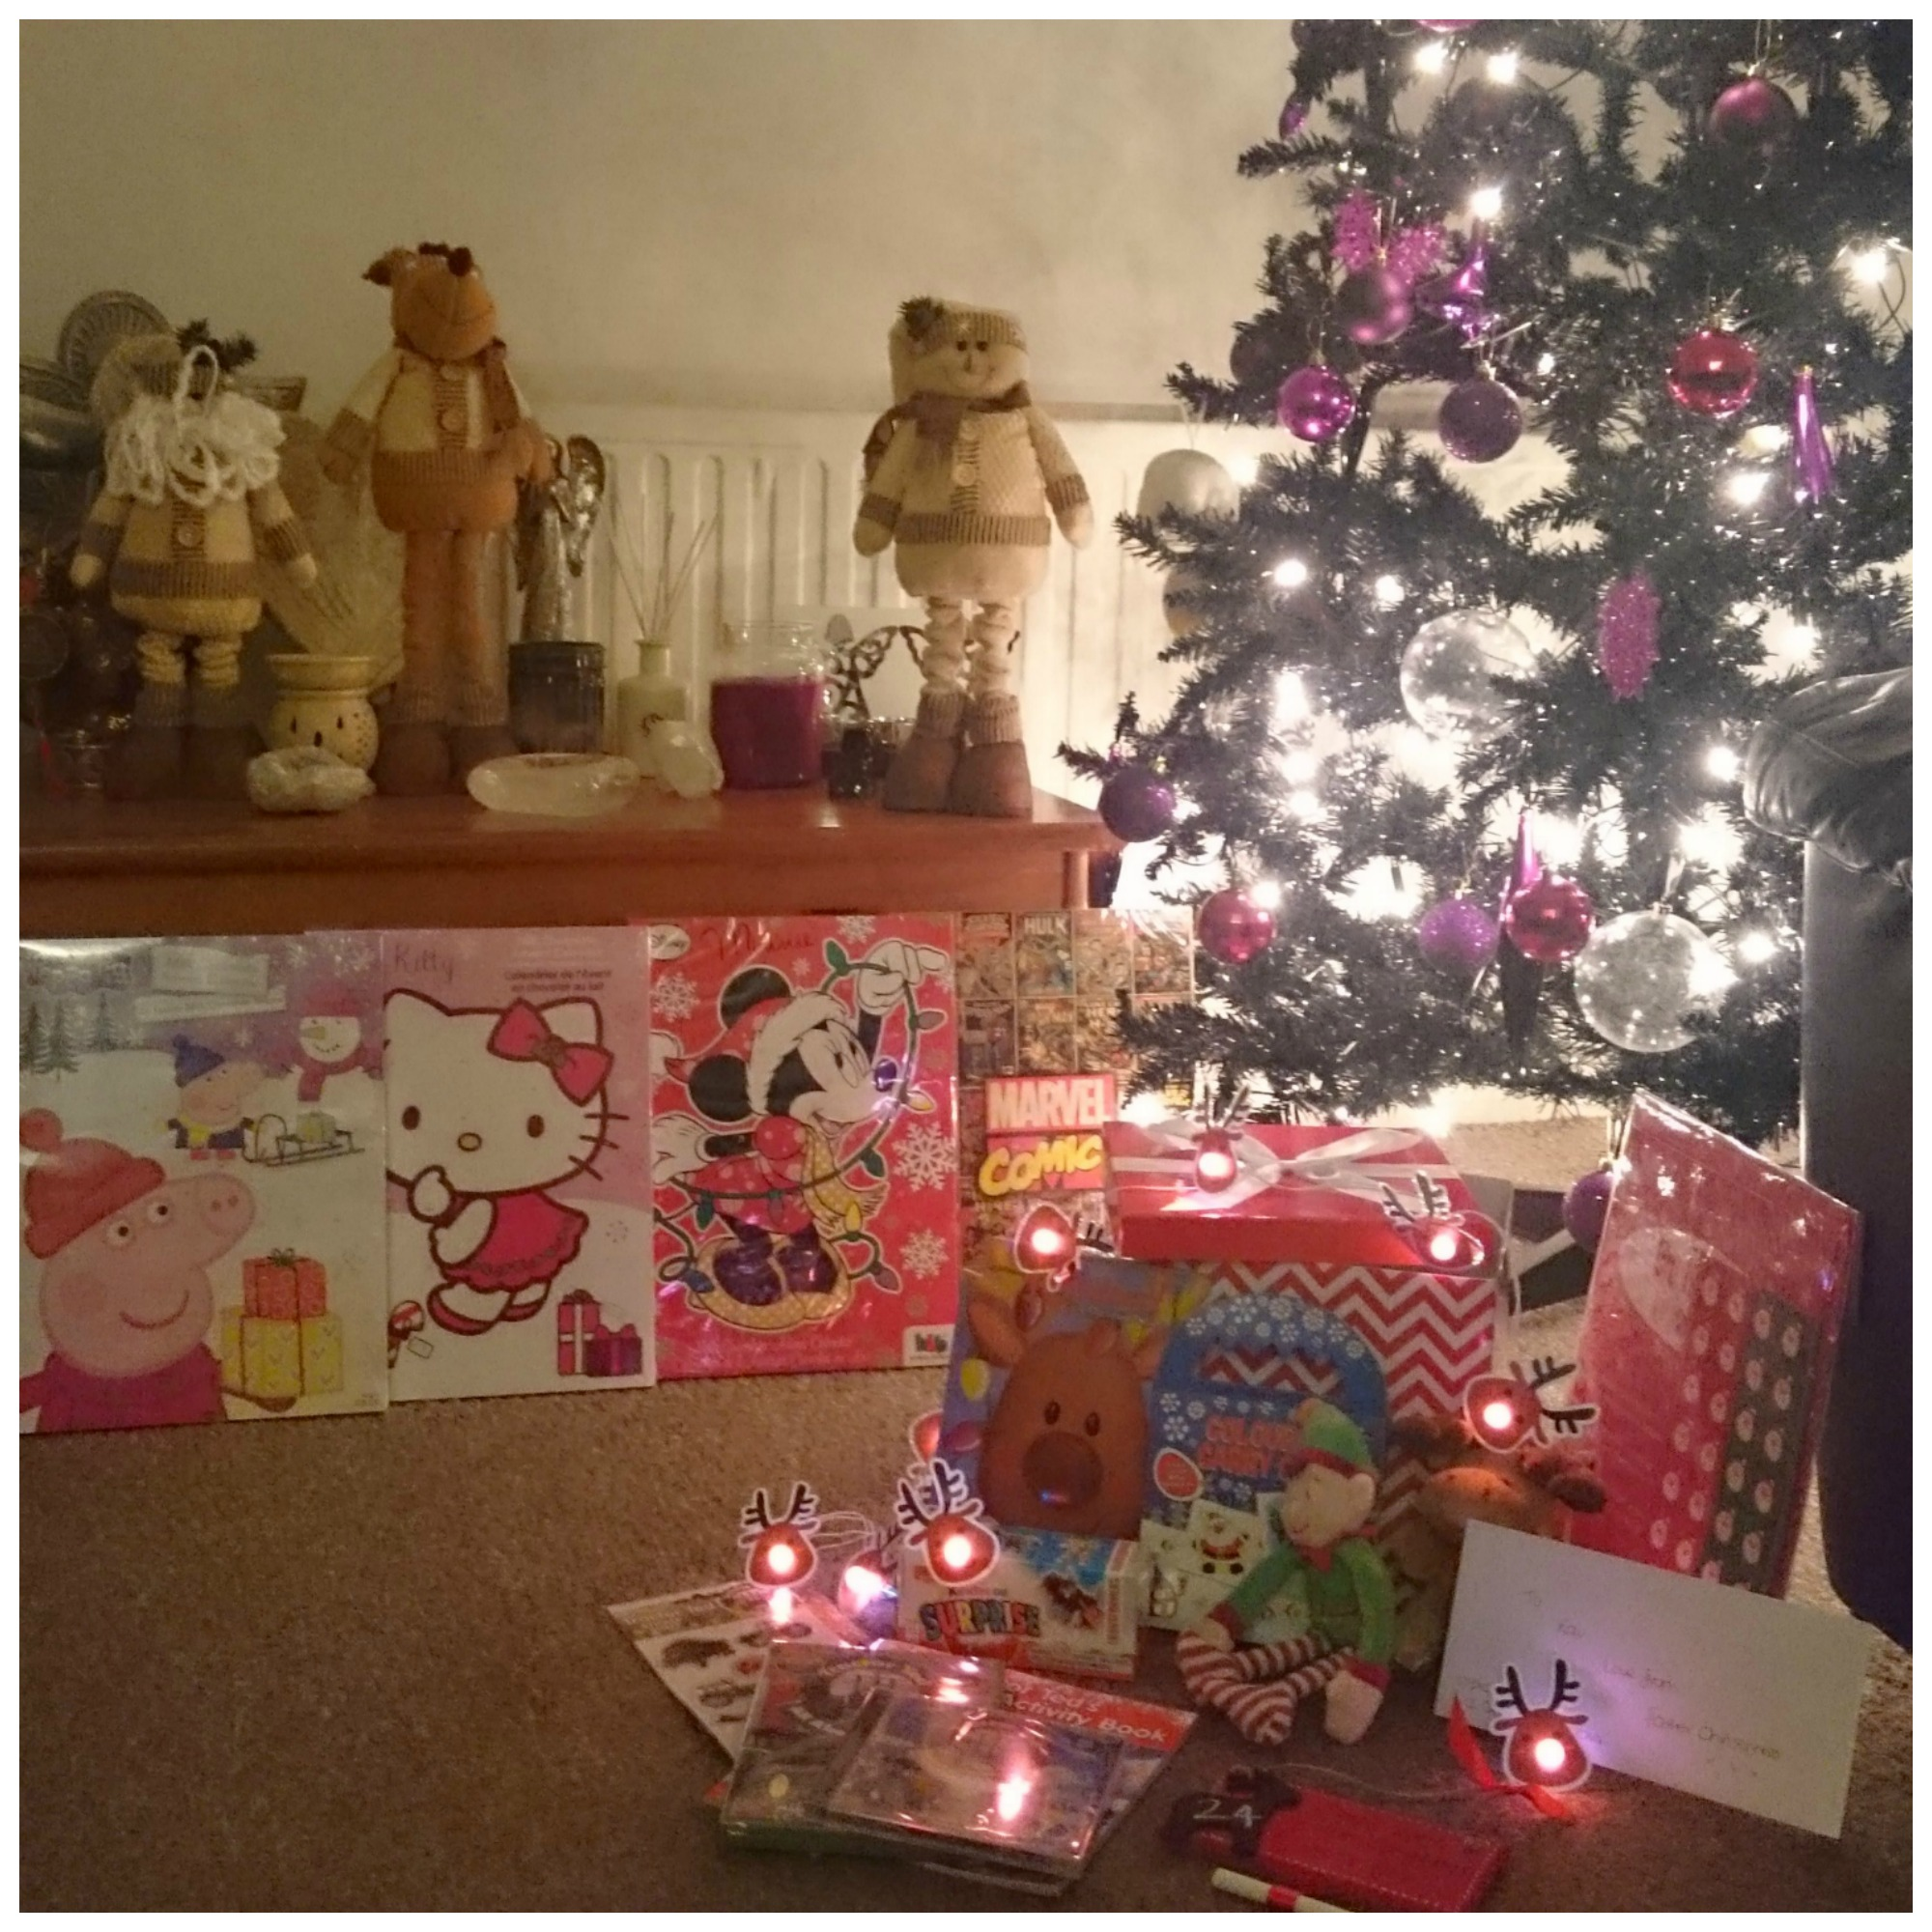 Ready for Christmas - NOT! - Ickle Pickles Life and Travels